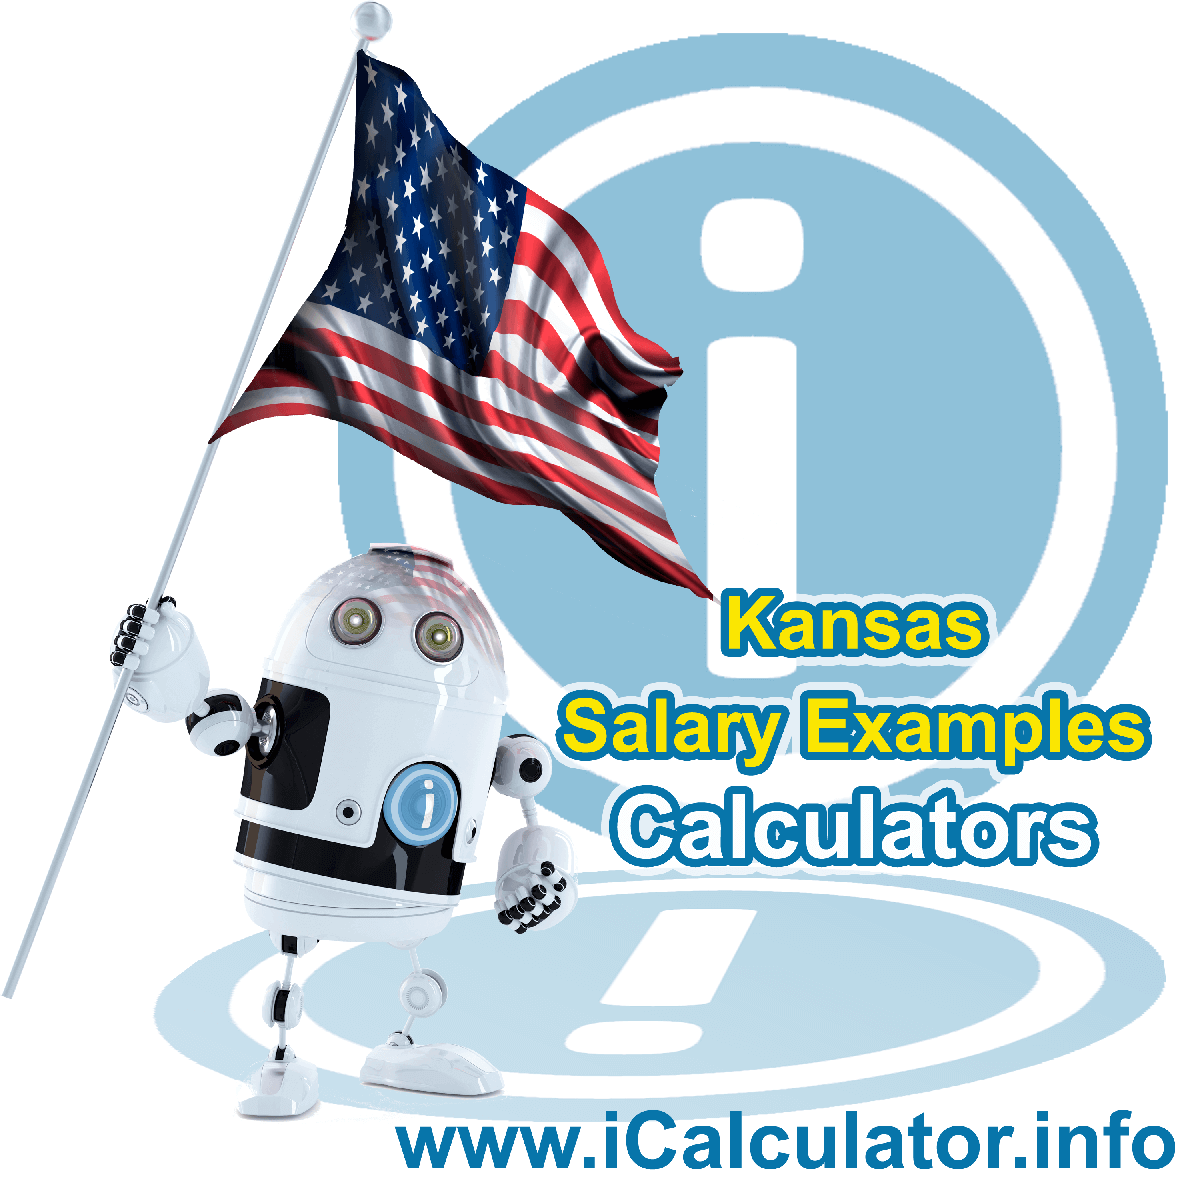 Kansas Salary Example for $290.00 in 2020 | iCalculator | $290.00 salary example for employee and employer paying Kansas State tincome taxes. Detailed salary after tax calculation including Kansas State Tax, Federal State Tax, Medicare Deductions, Social Security, Capital Gains and other income tax and salary deductions complete with supporting Kansas state tax tables